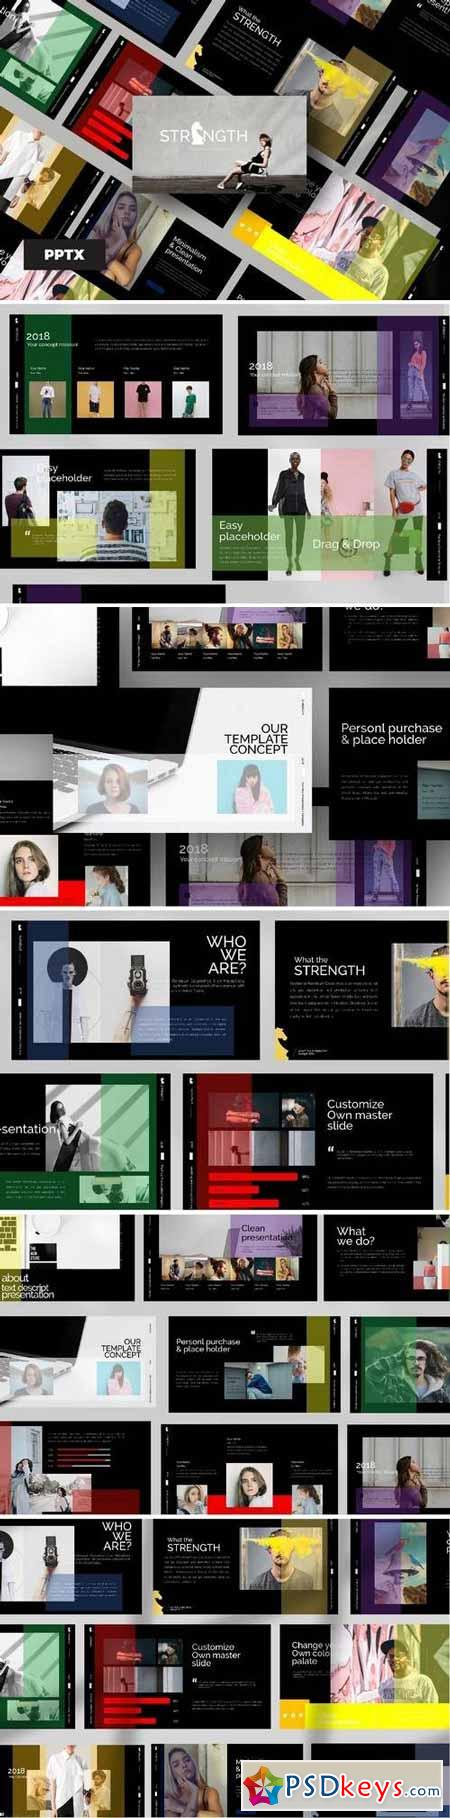 Strenght Black - Powerpoint, Keynote Templates